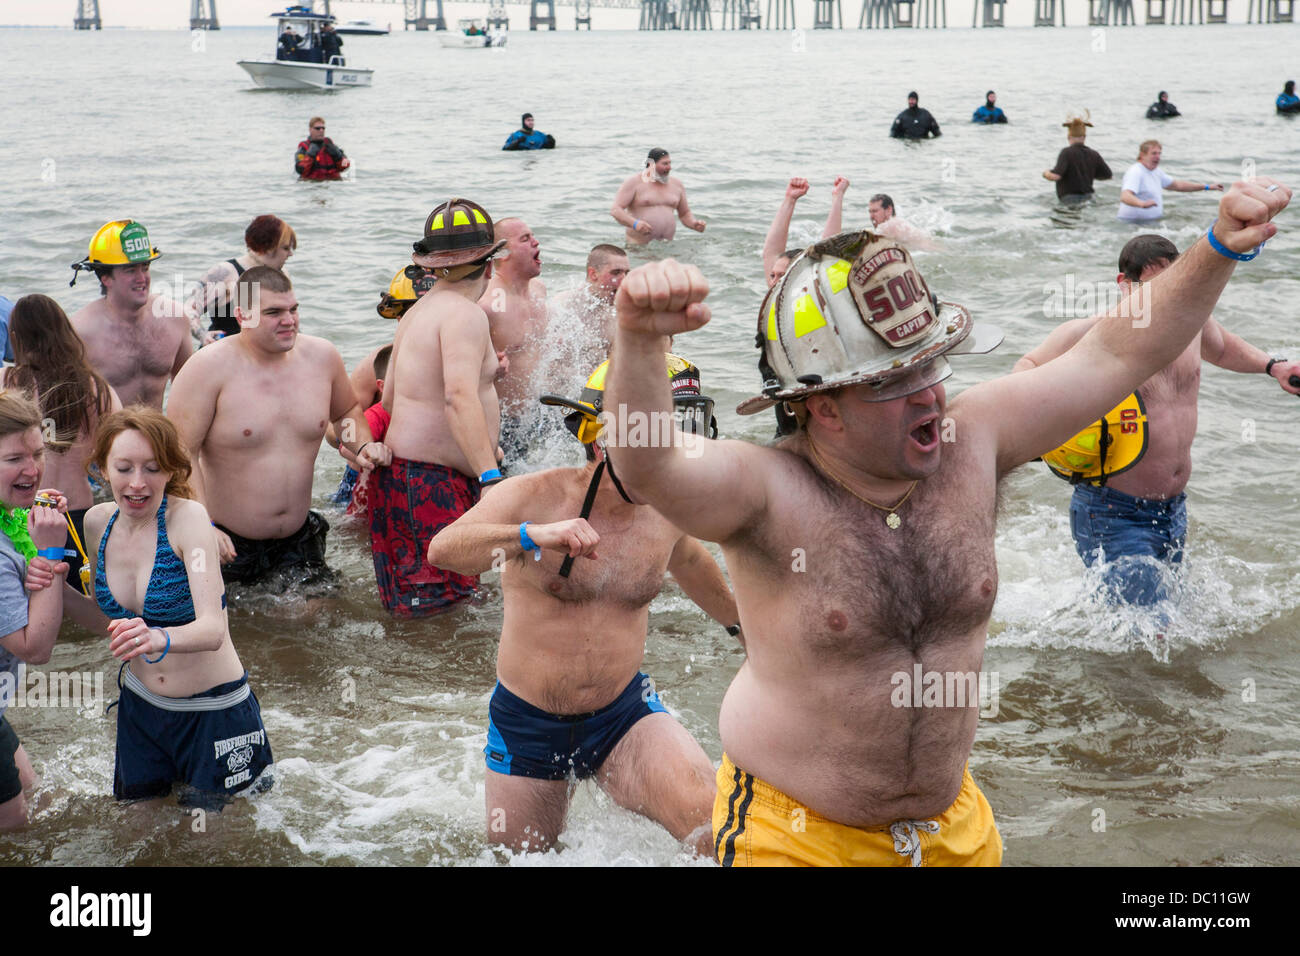 A polar bear plunge event where participants jump into ice cold water during the winter.  - Stock Image